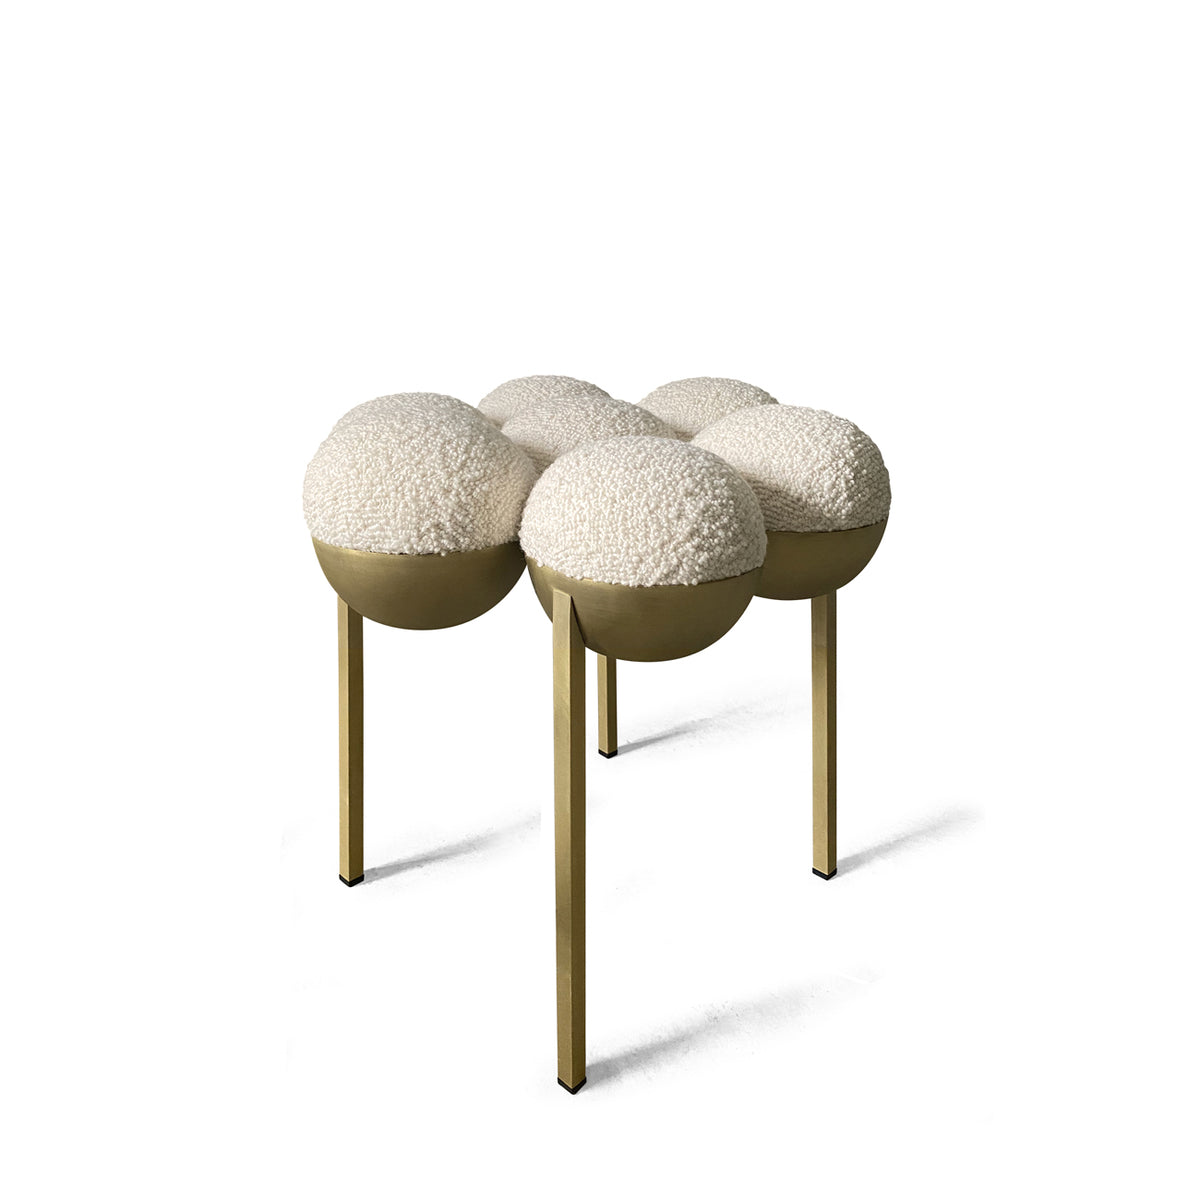 SATURN POUFFE SMALL - BRASS, IVORY BOUCLE